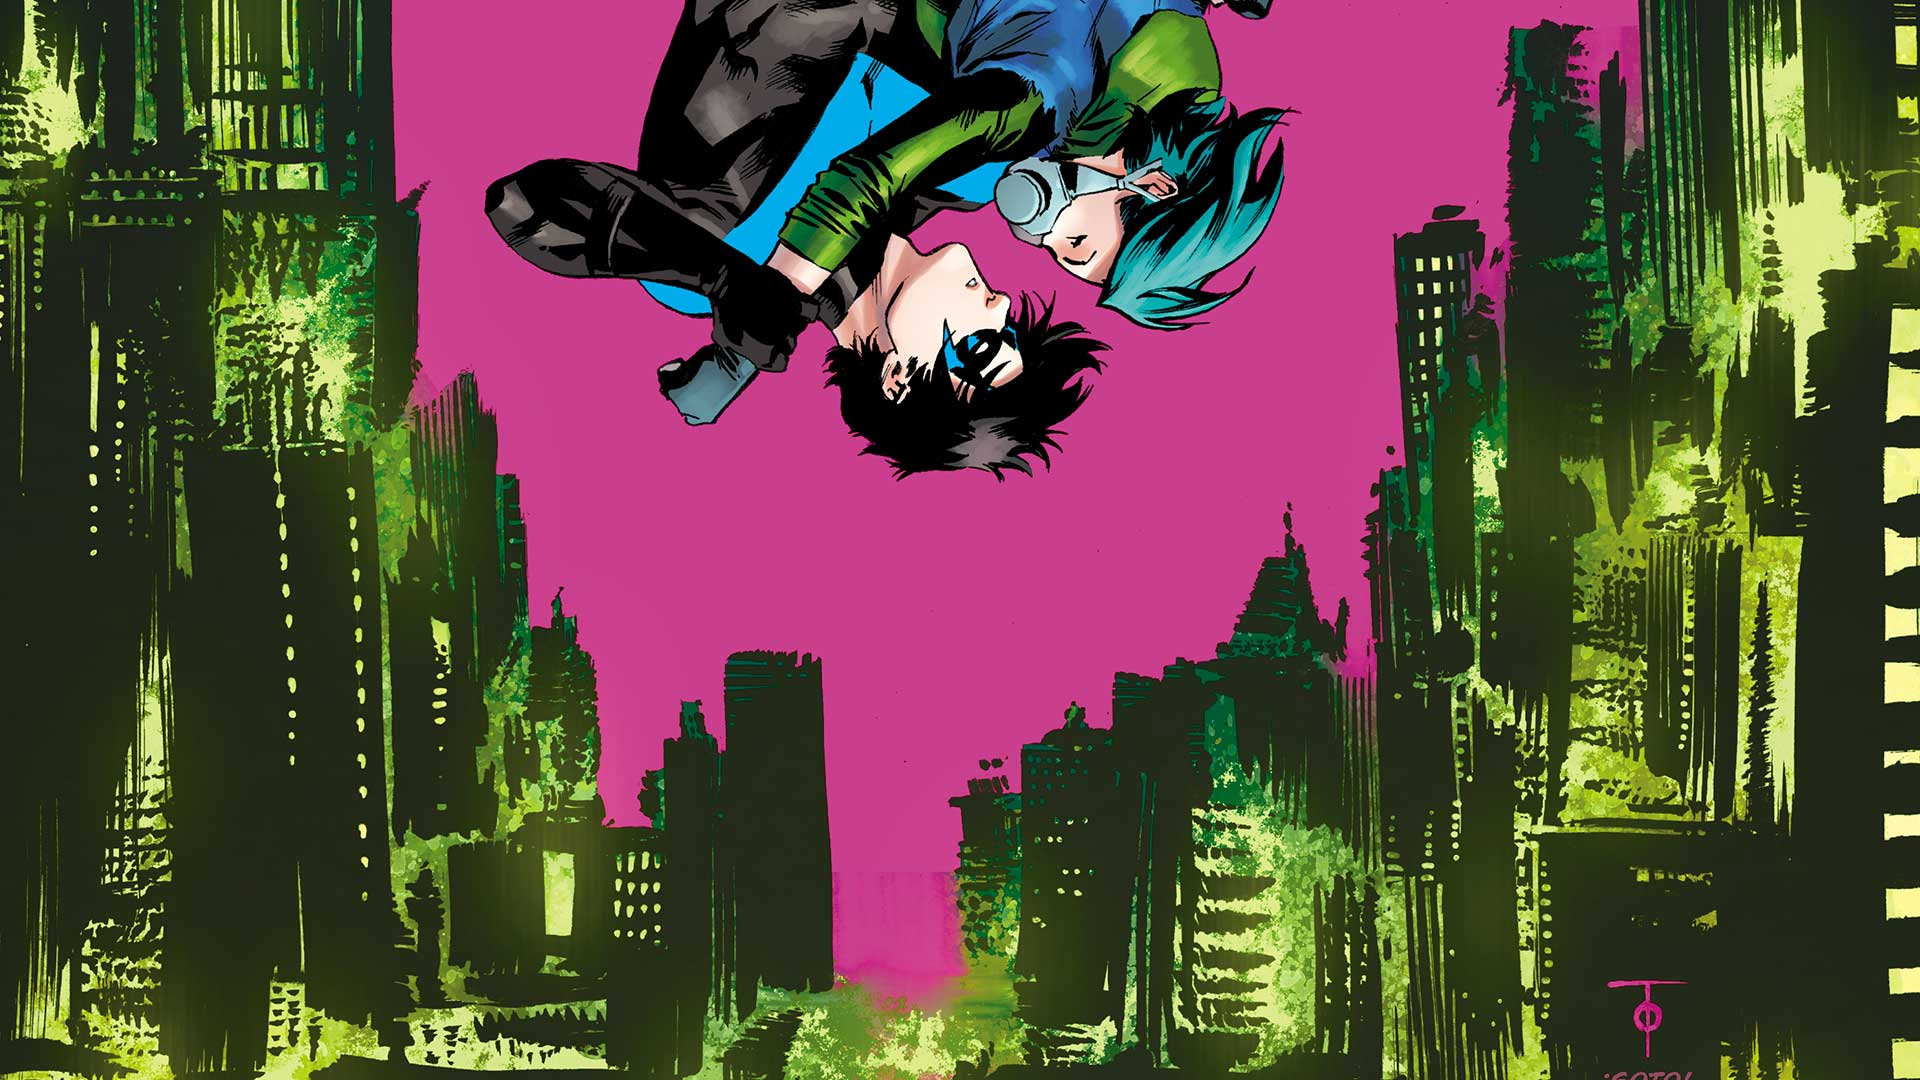 [EXCLUSIVE] DC Preview: Nightwing #15